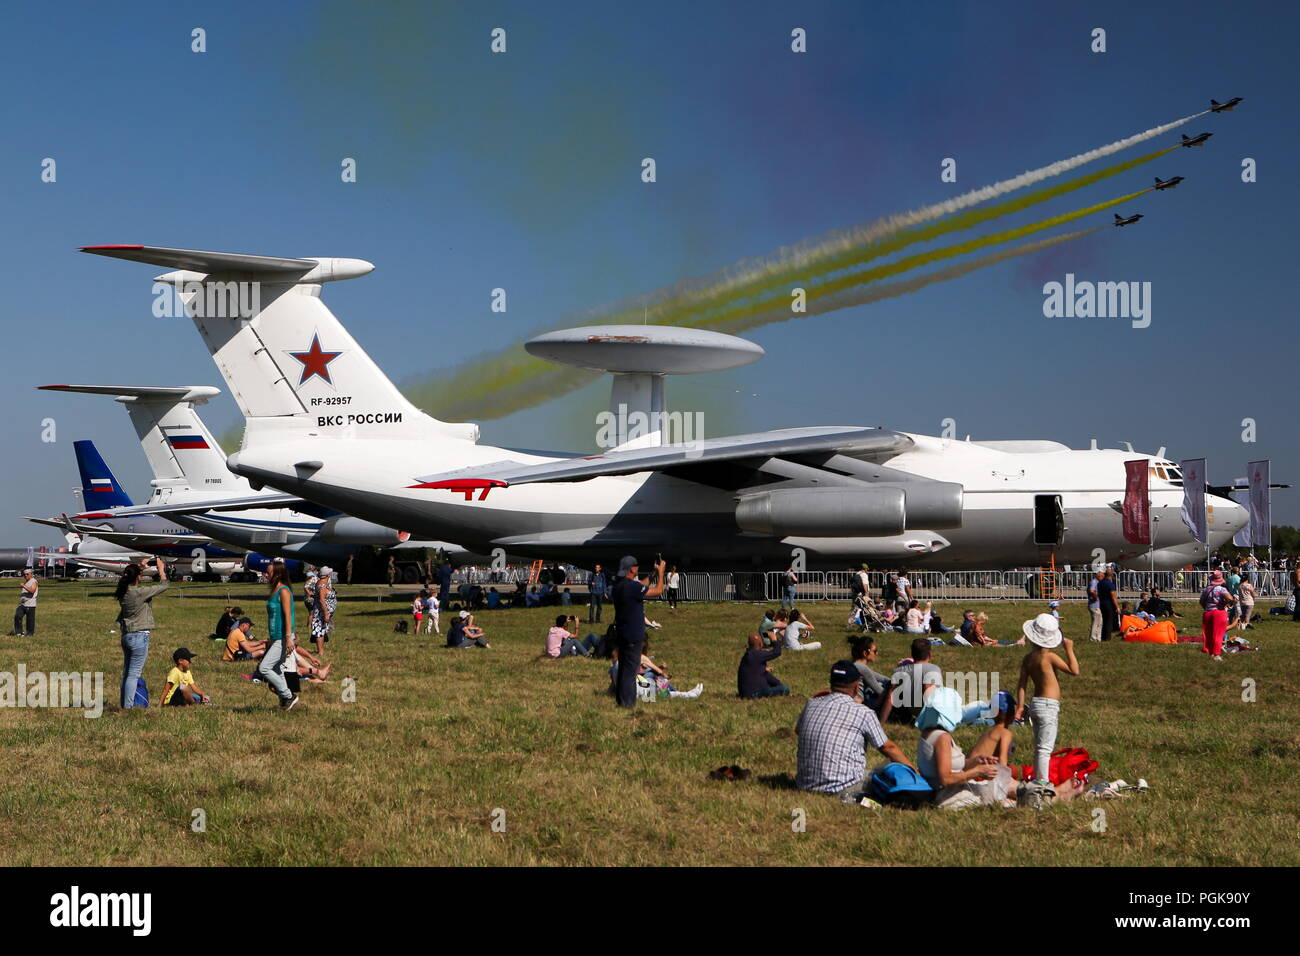 Kubinka military airfield in the Moscow region: how to get there 12